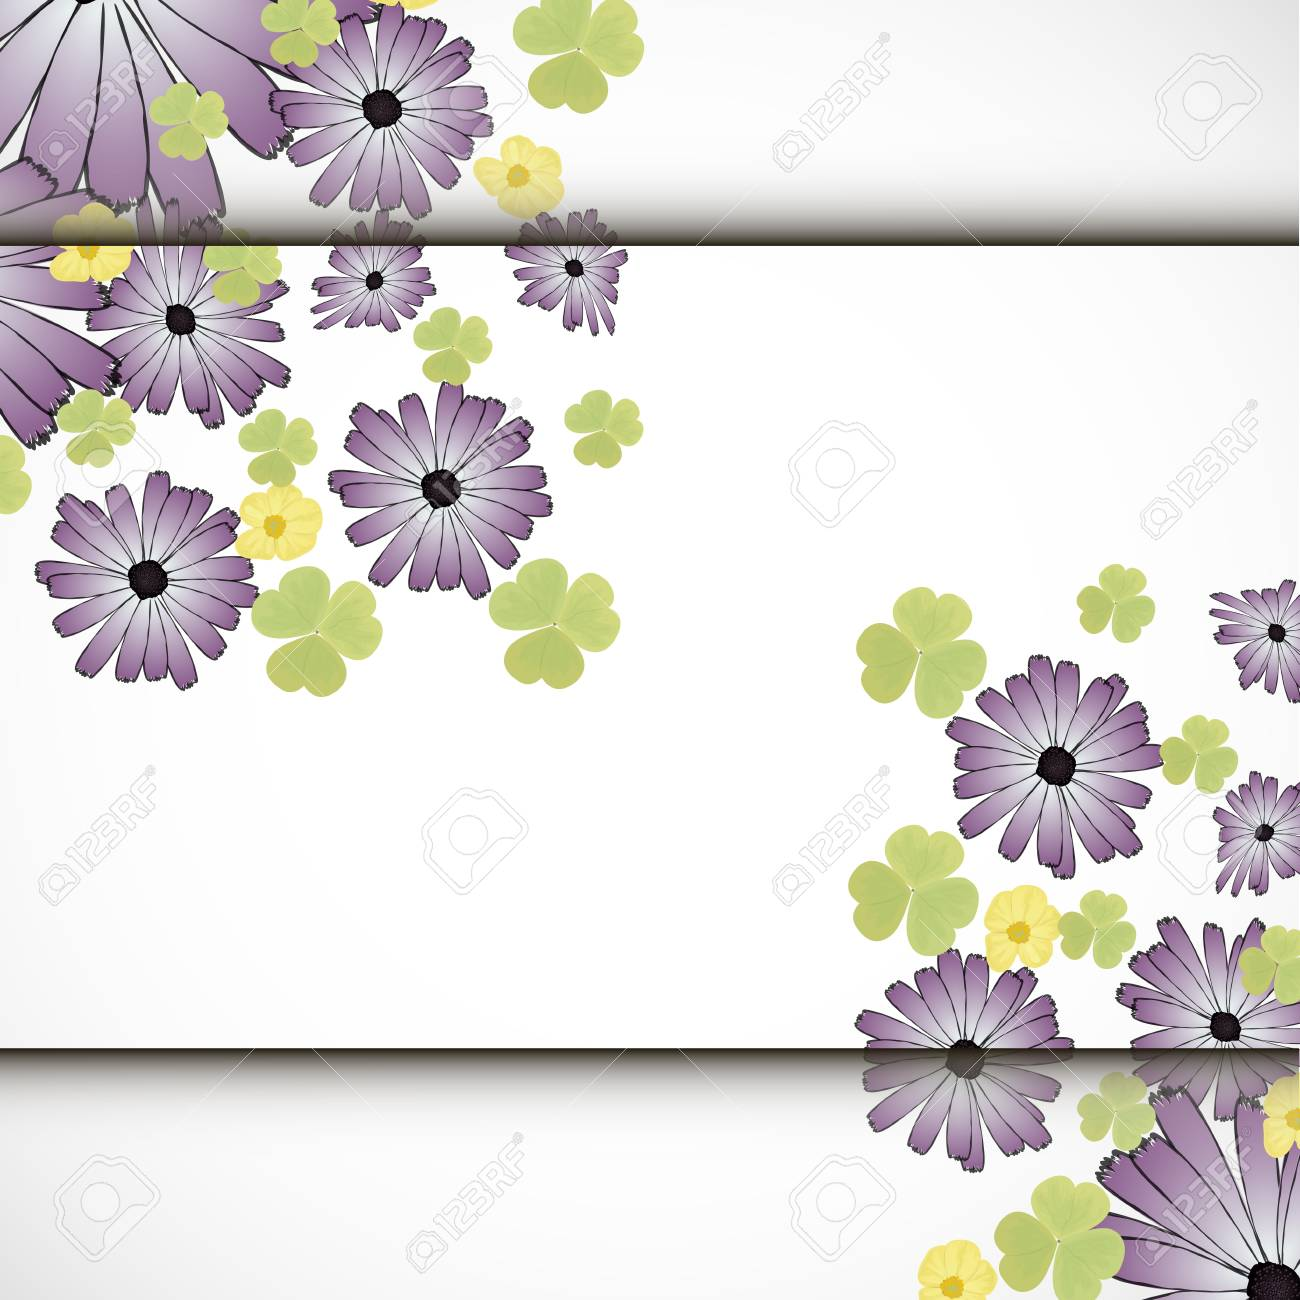 colorful flower with shadow background   illustration Stock Illustration - 18677455